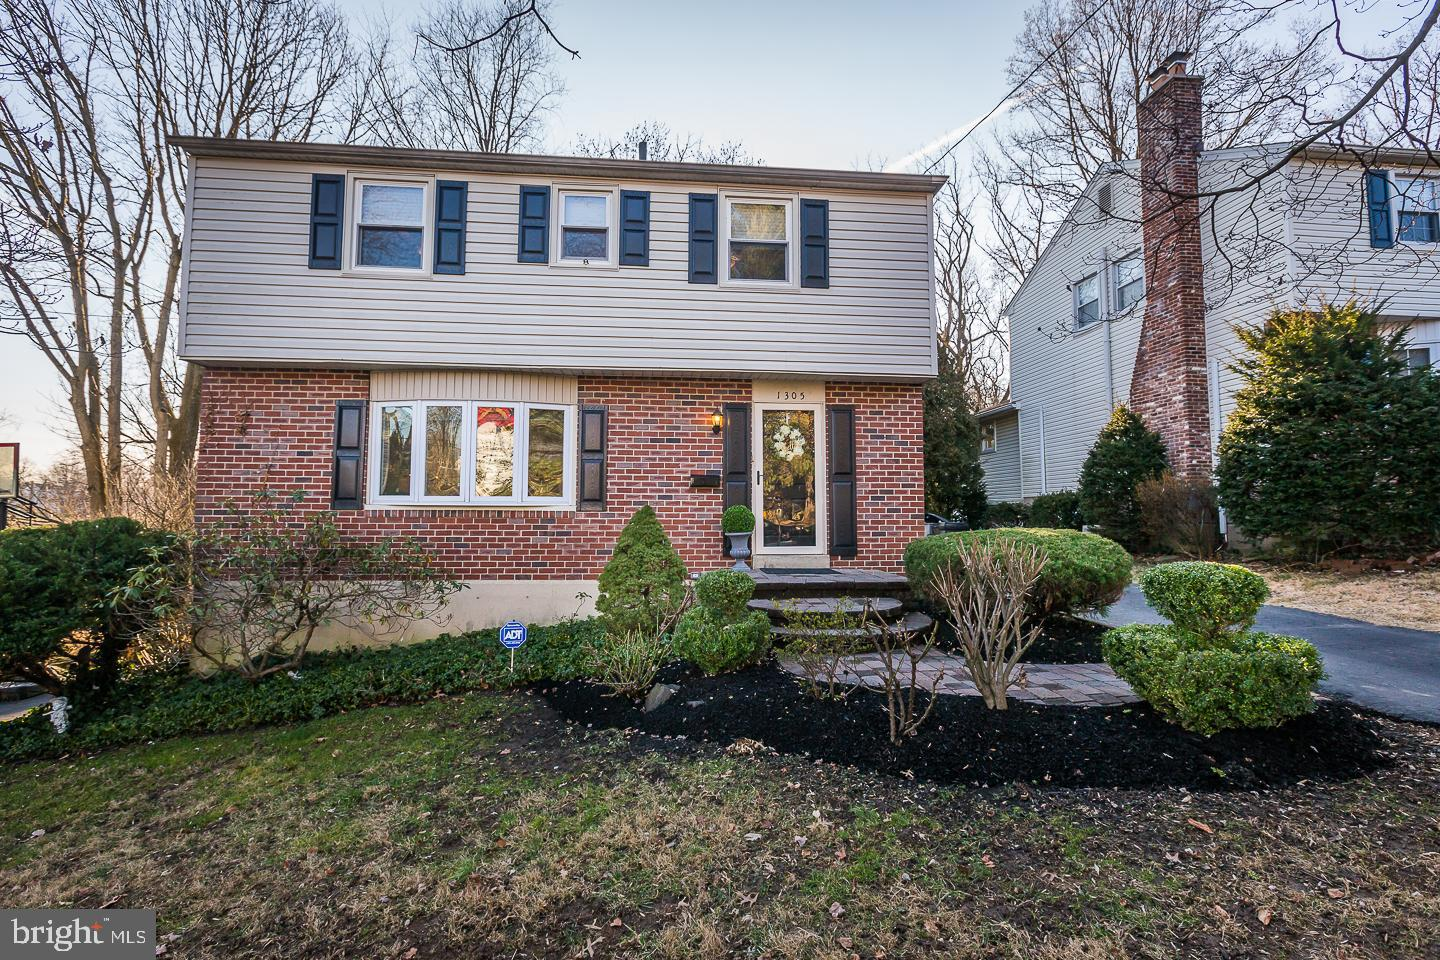 1305 Bon Air Terrace Havertown, PA 19083